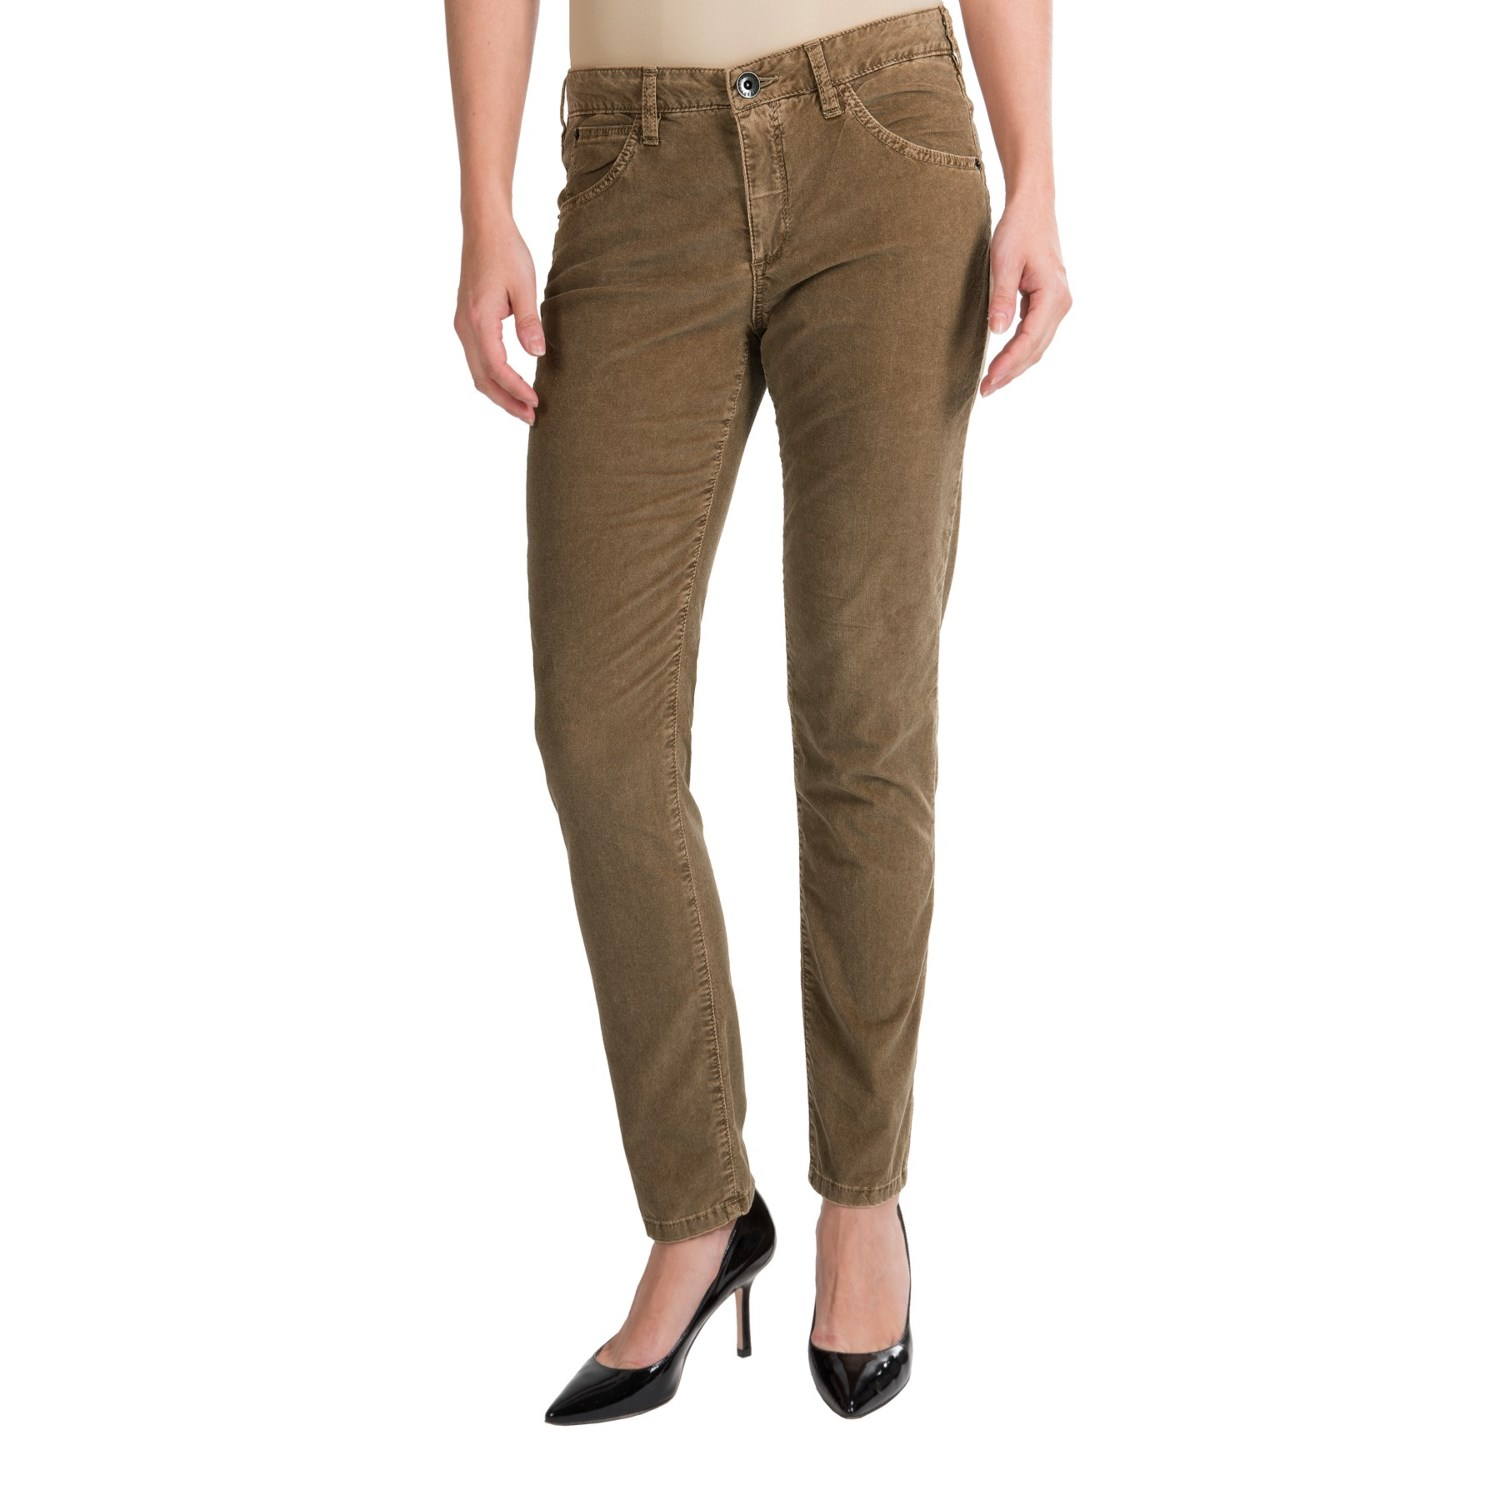 Innovative Khaki Skinny Pants Sku 10047018  39 50  24 98 Khaki Skinny Pants Is